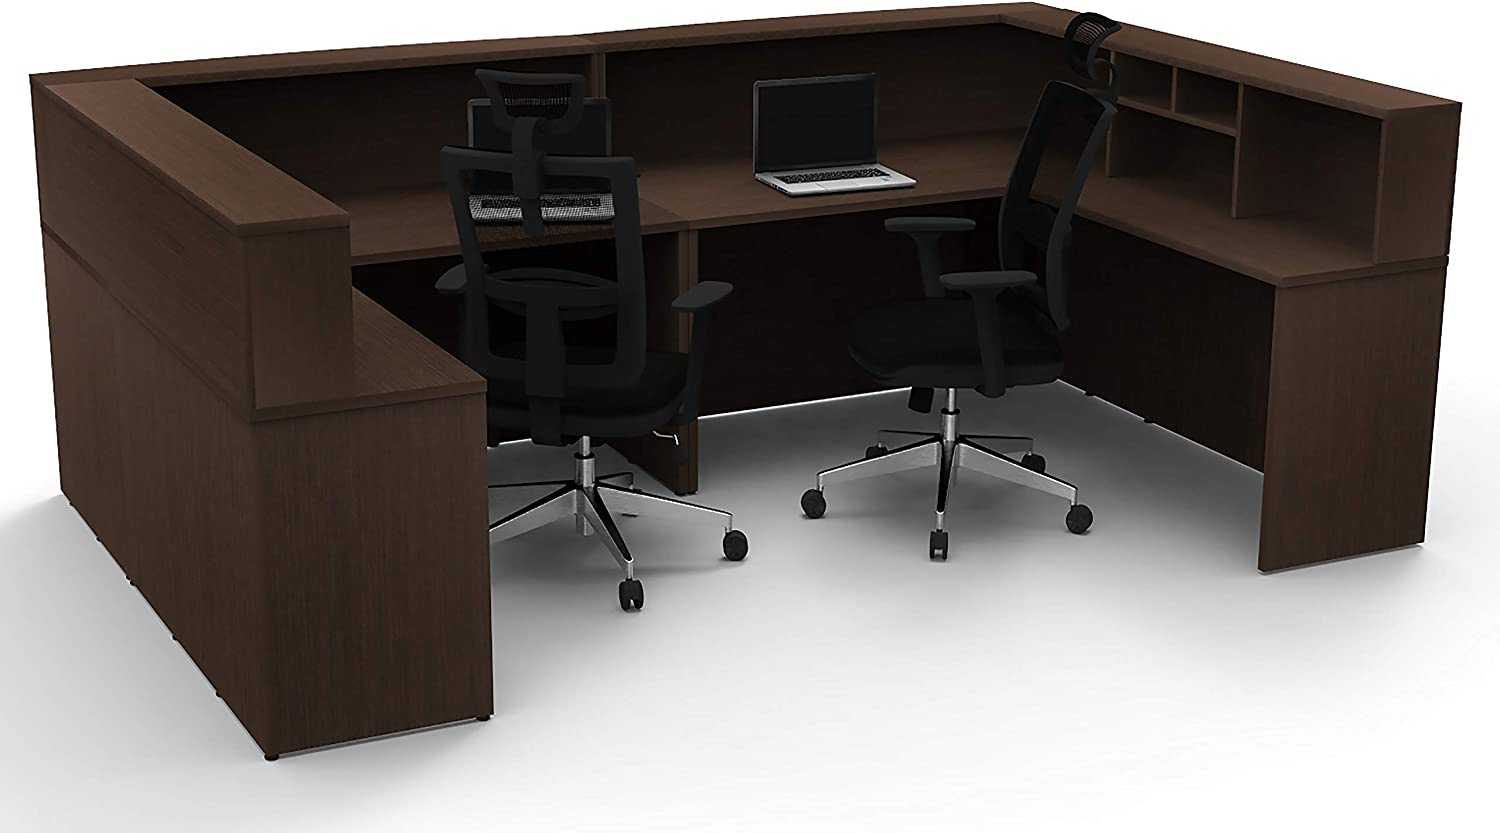 Update Your Spaces with Commercial Grade Reception Collaboration Furniture. Office Reception Desk Reception Corner Collaboration Furniture Model 4307 8 Pc Group Contemporary Espresso Color